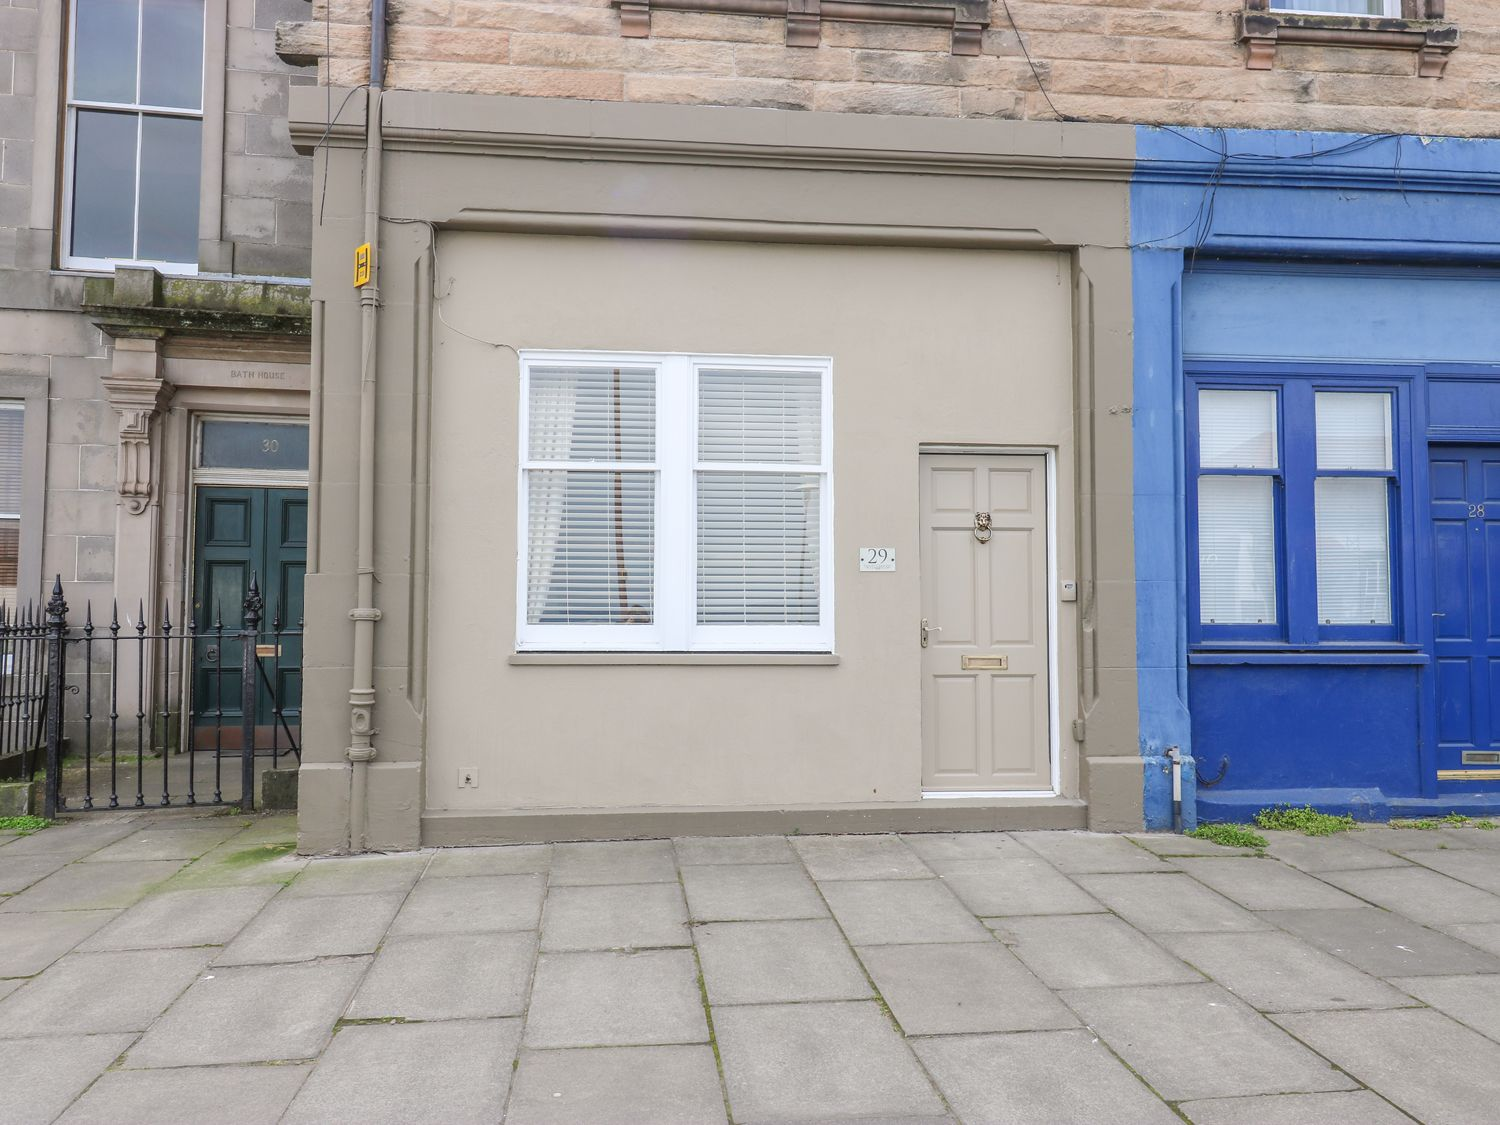 29 Trinity Crescent - Scottish Lowlands - 1001408 - photo 1